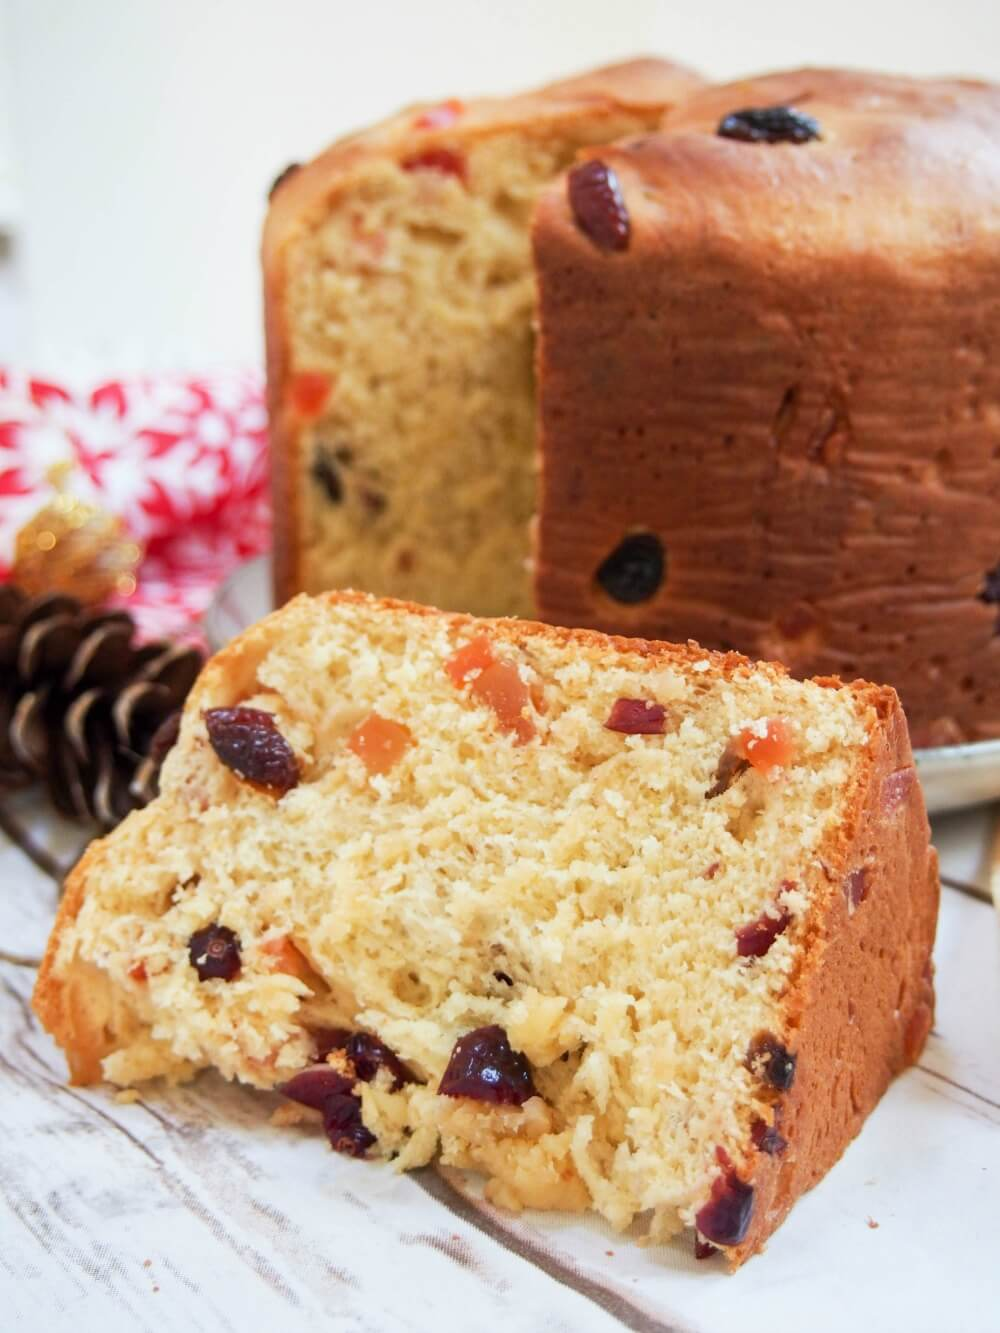 Panettone - a lightly sweet fruit studded bread common over Christmas/New Year.